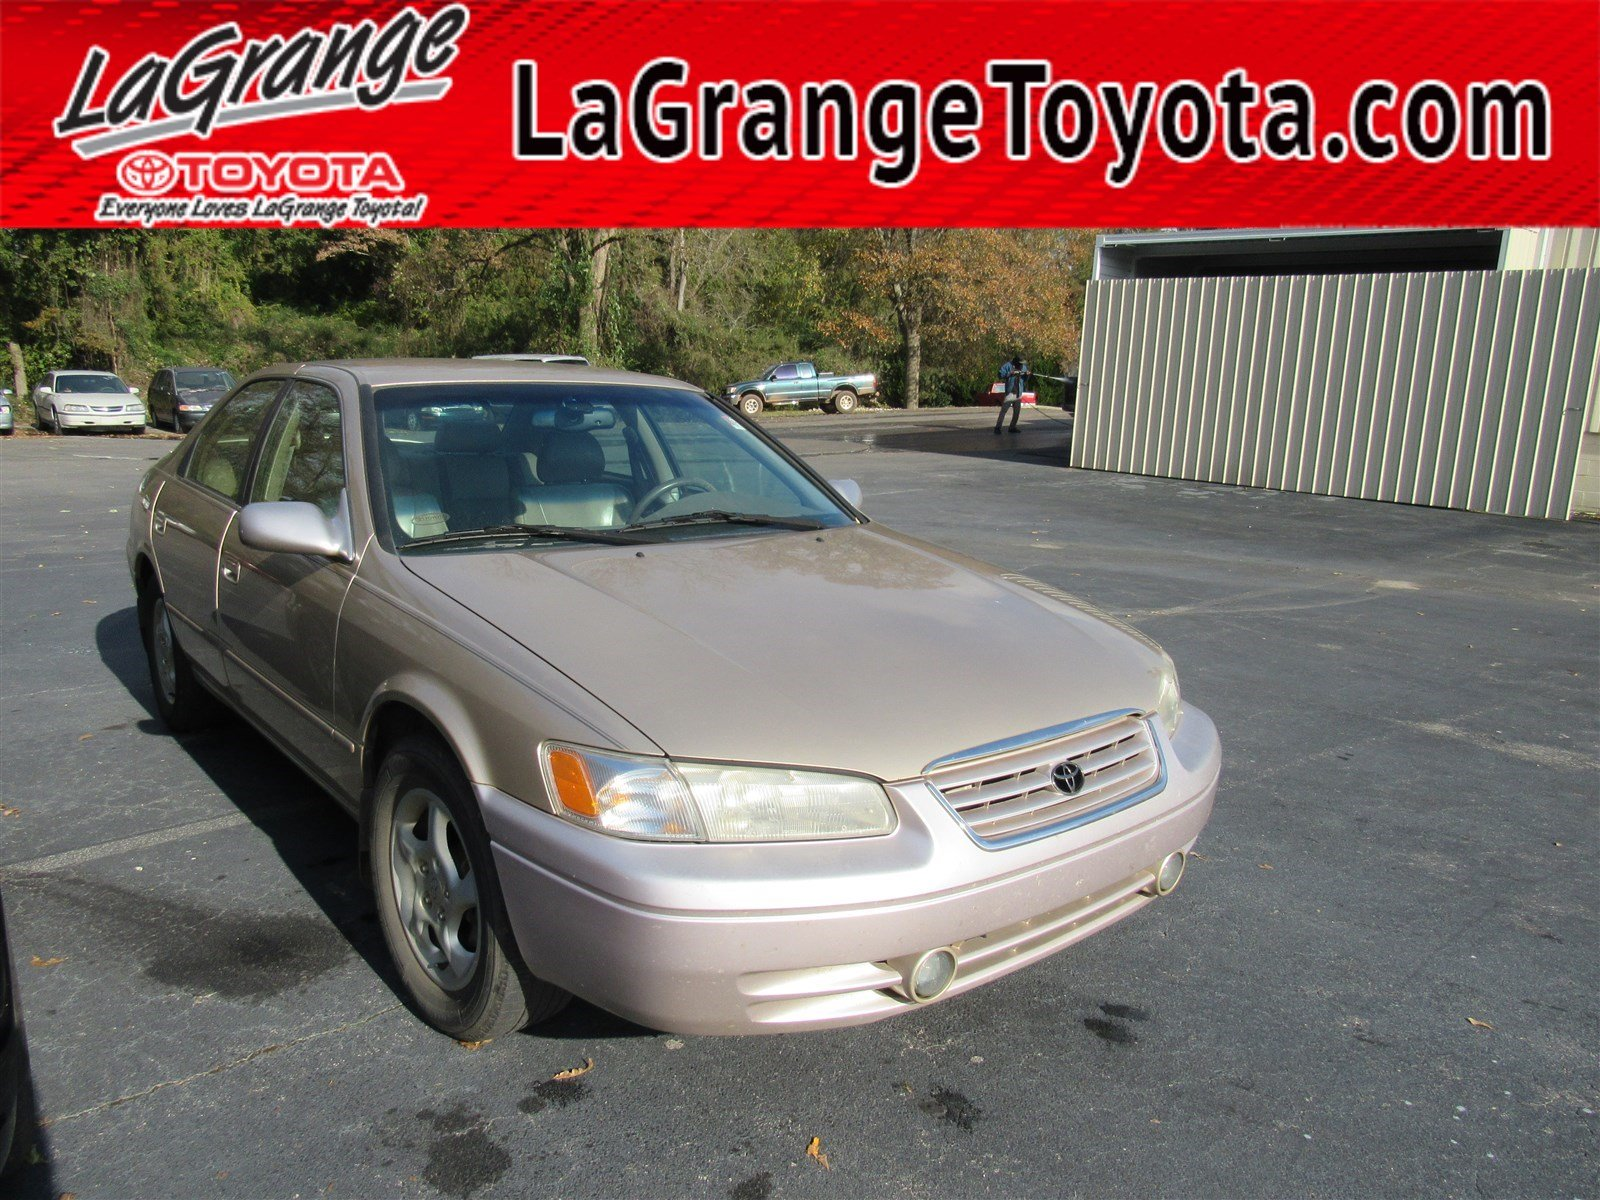 Pre-Owned 1998 Toyota Camry 4dr Sdn LE V6 Auto